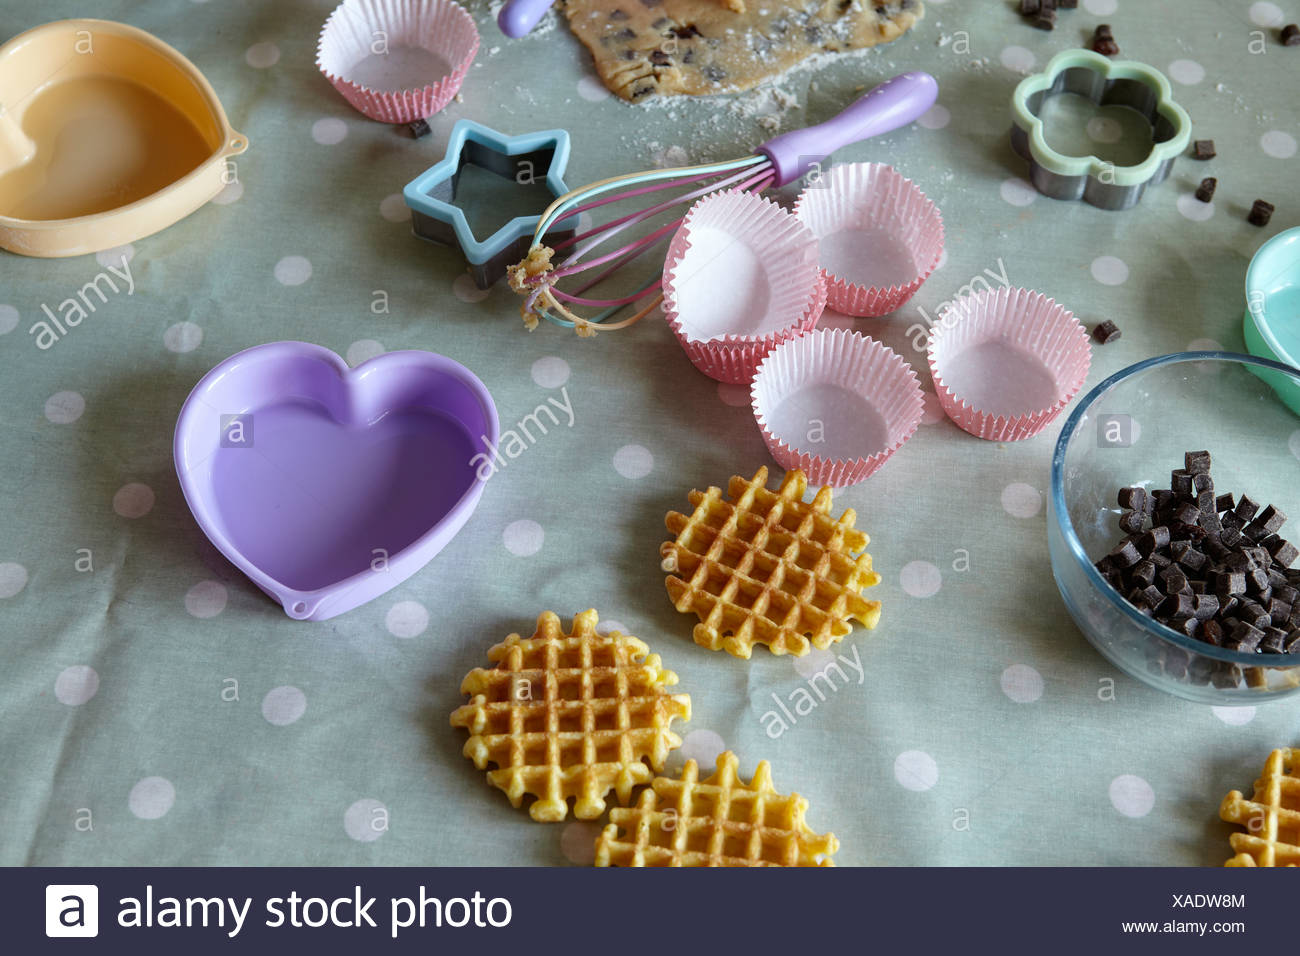 Baking implements in messy kitchen - Stock Image